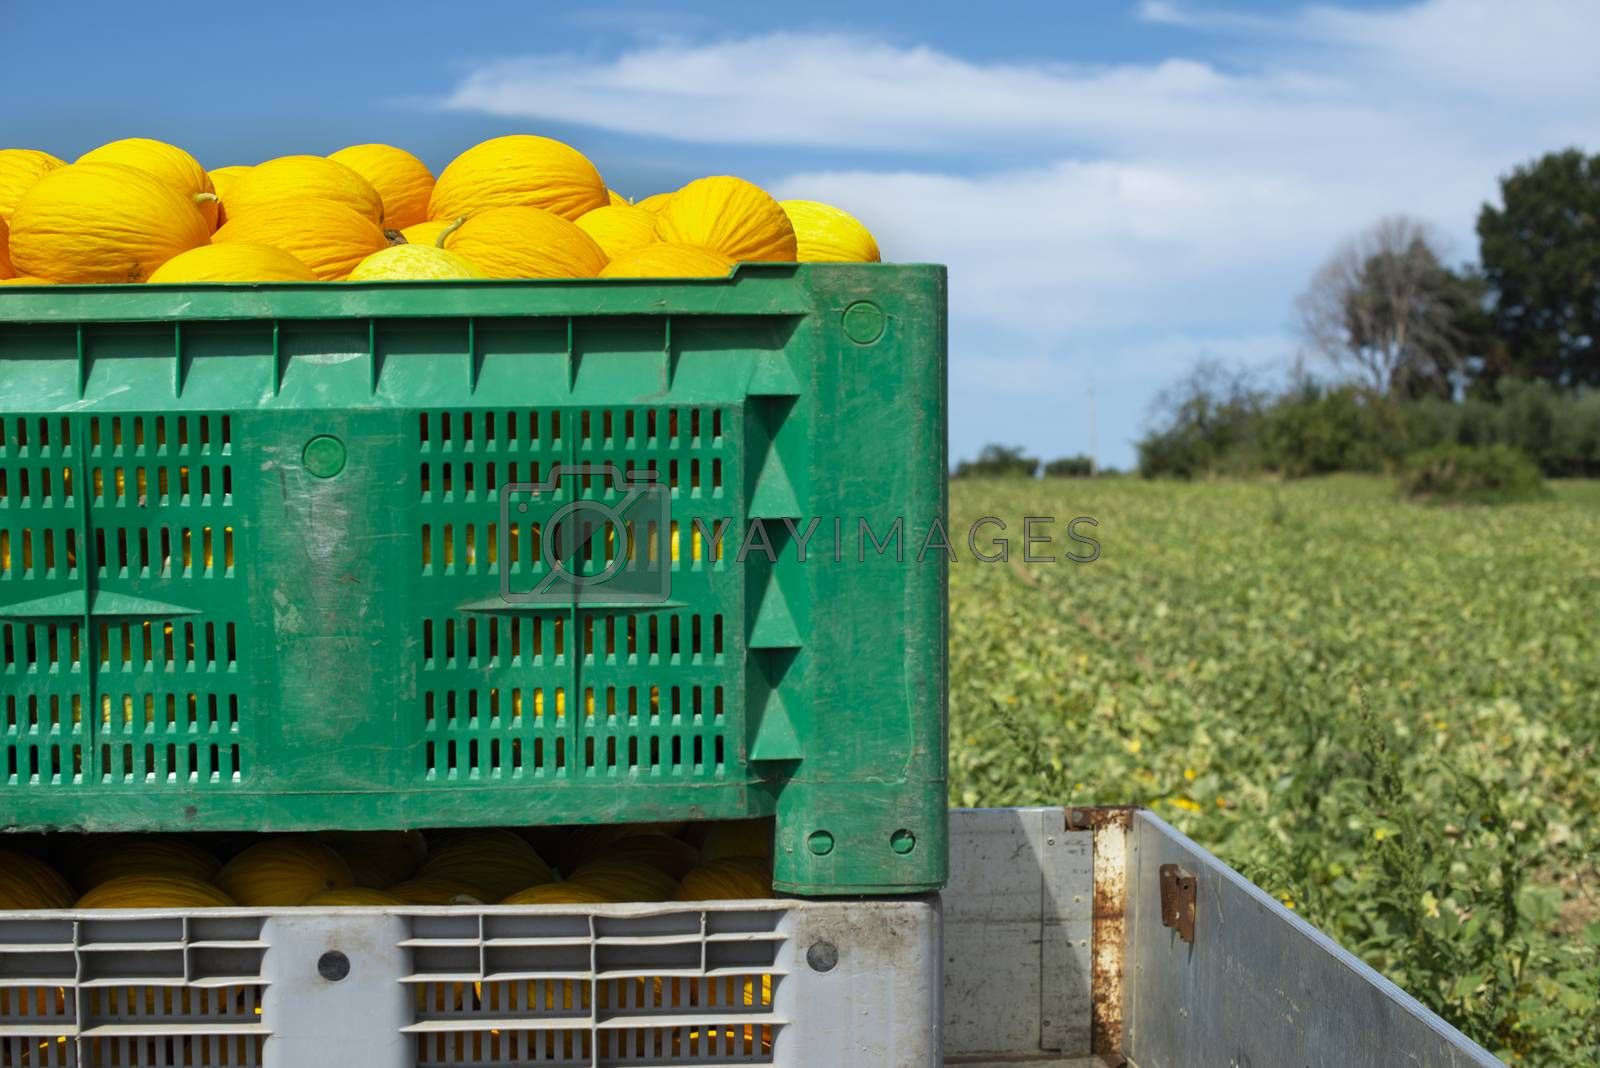 Canary yellow melons in crate loaded on truck from the farm. Transport melons from the plantation. Sunny day.